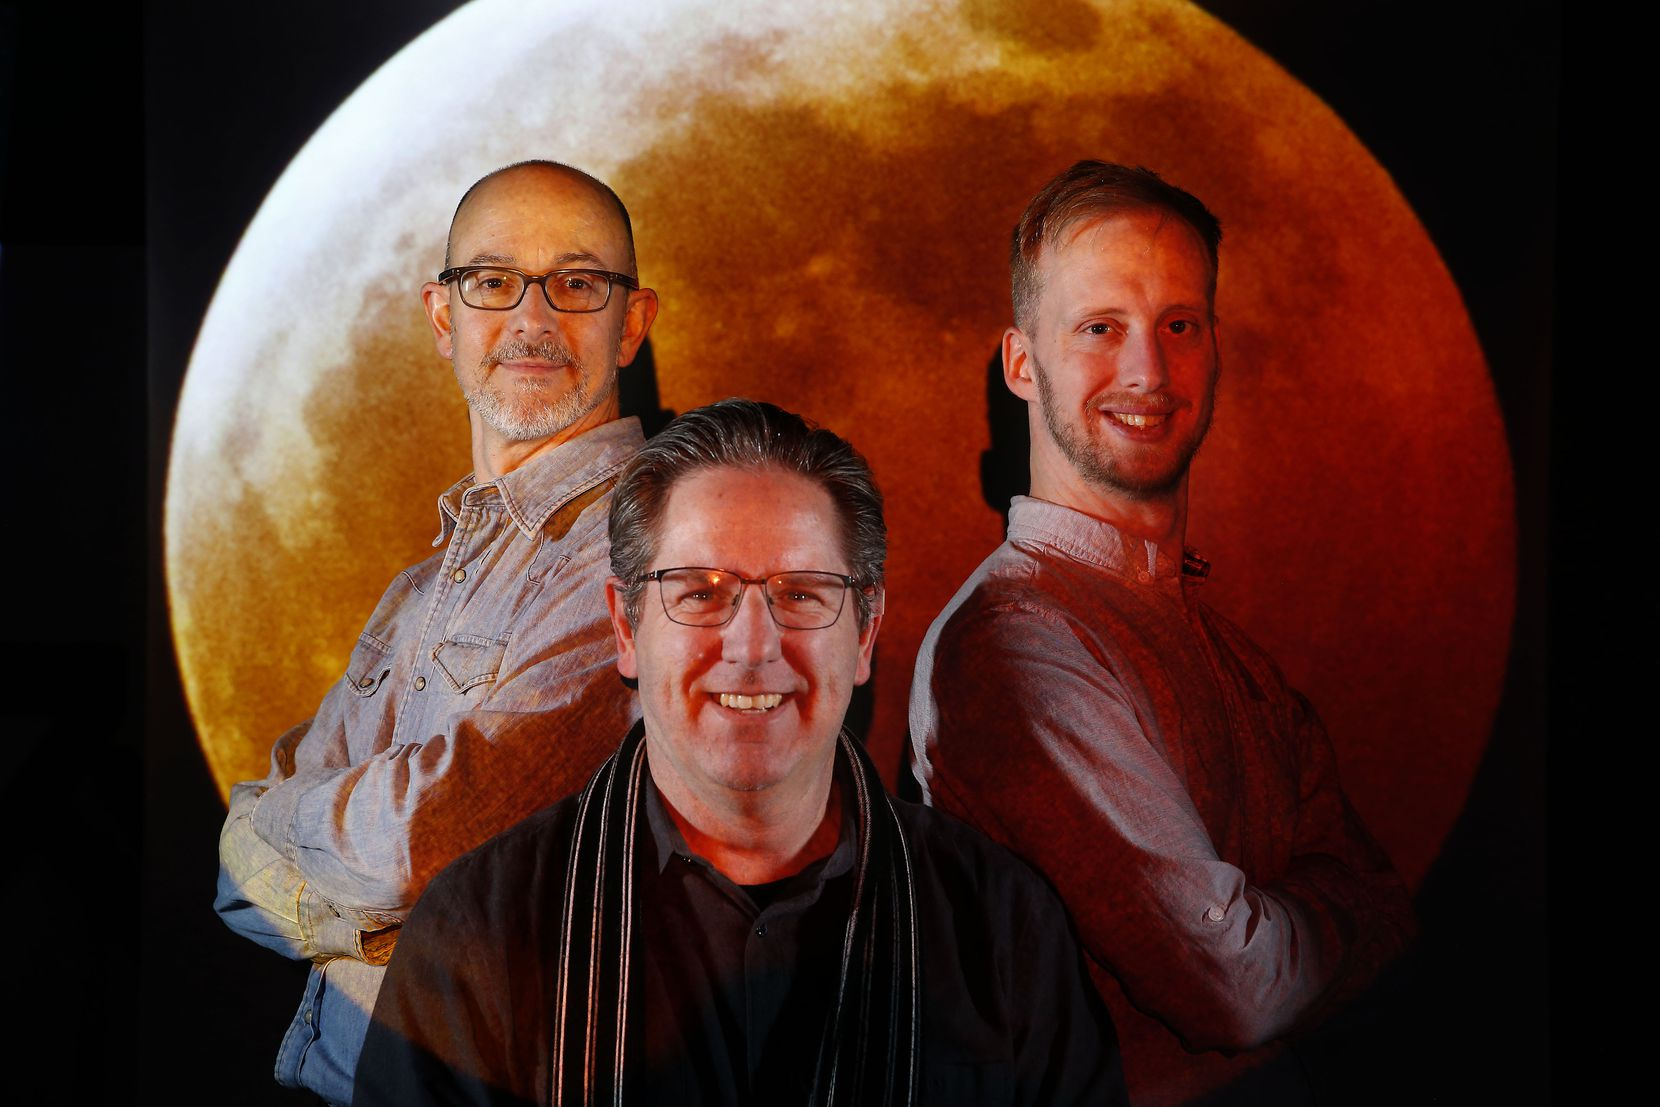 Michael Hamtil, (from left) Daniel Carde and Tom Fox in The Dallas Morning News photo studio for a story about shooting the Super Blood Wolf Moon, on Jan. 23, 2019. Carde's photo of the total lunar eclipse which took place Sunday, January 20, 2019 is projected in the background.